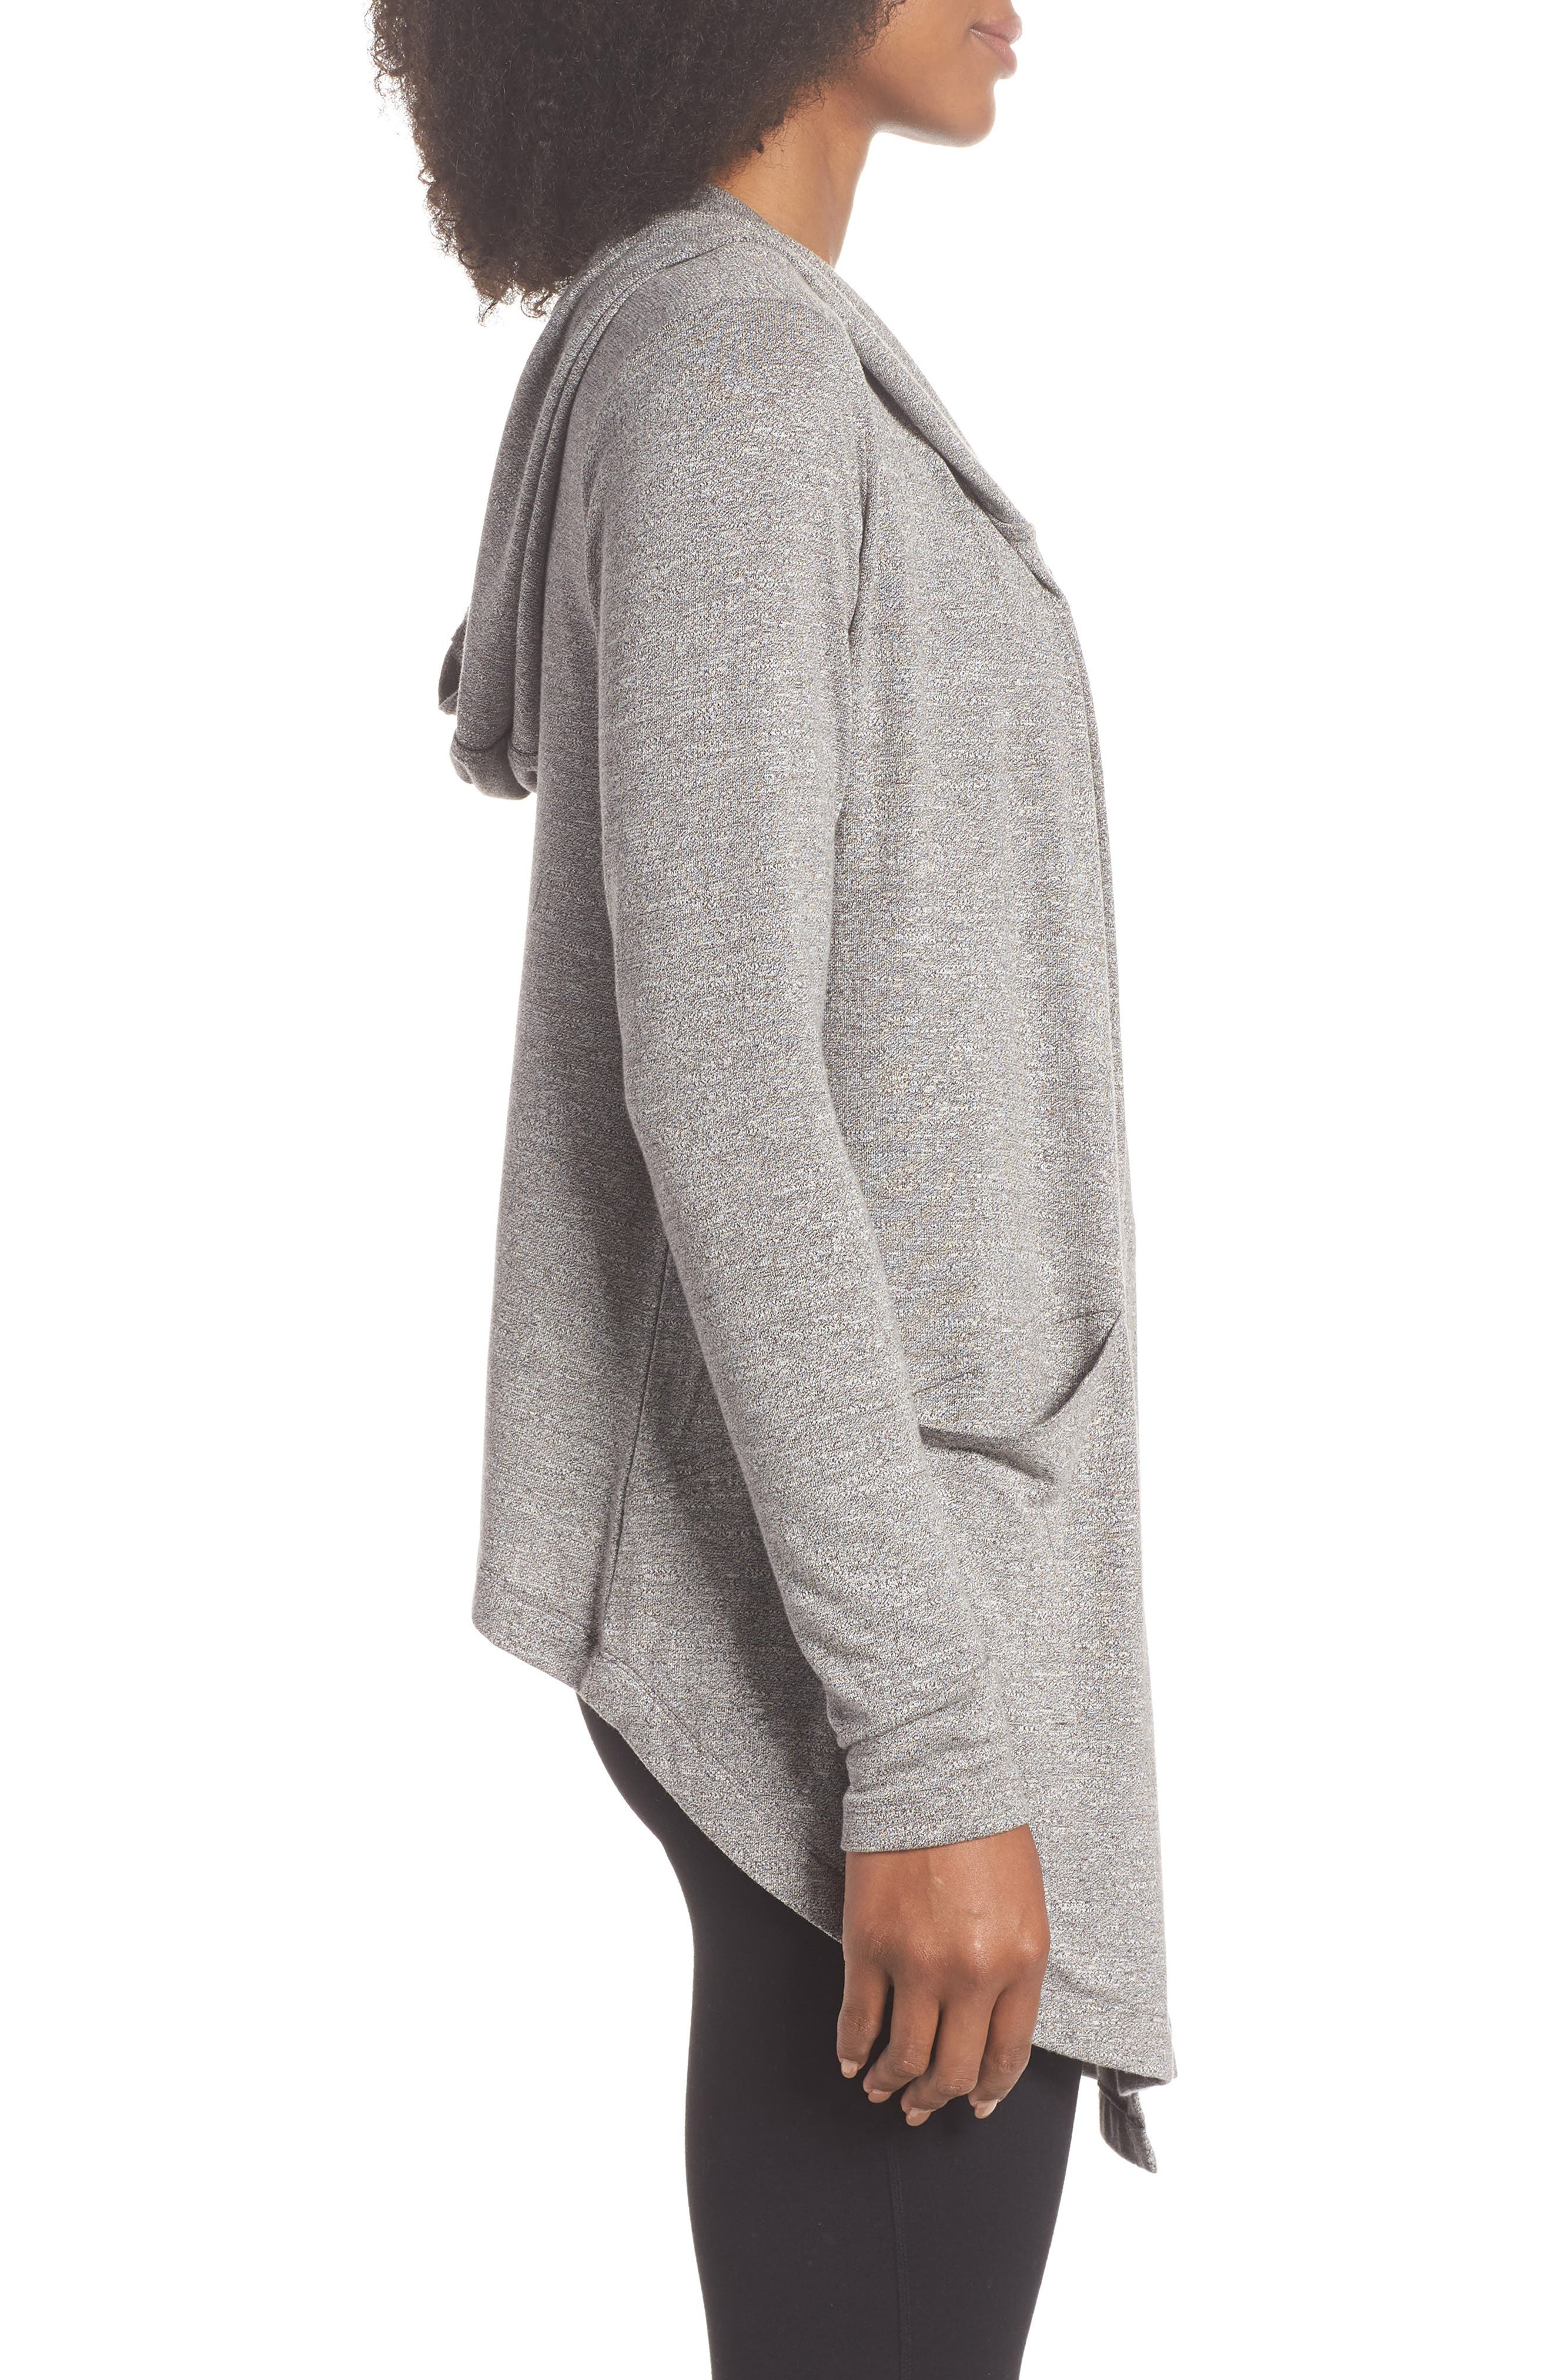 After Class Hooded Cardigan,                             Alternate thumbnail 3, color,                             GREY DARK HEATHER